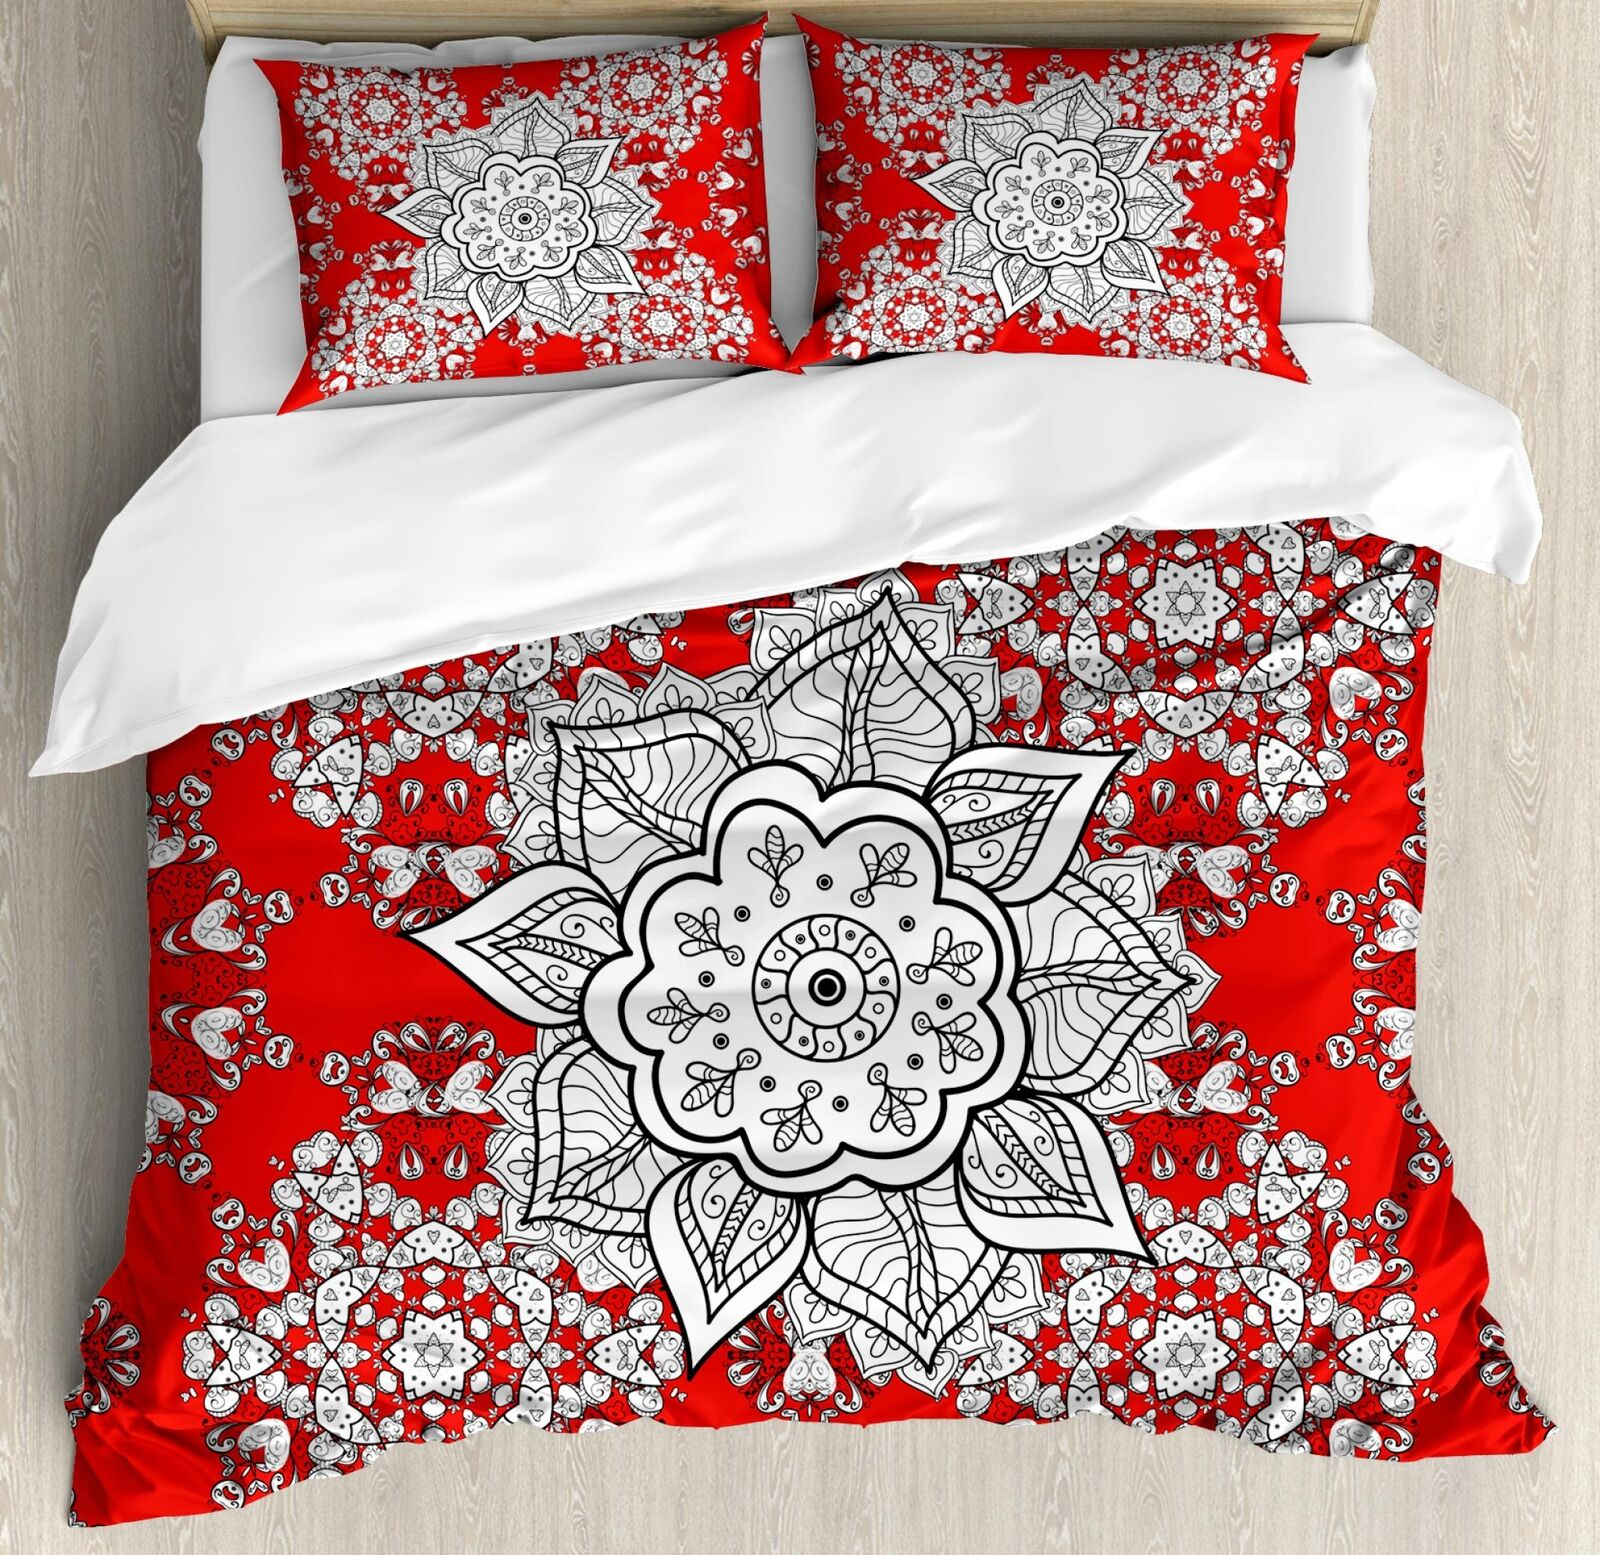 Eastern Mandala Duvet Cover Set Twin Queen King Dimensiones with Pillow Shams